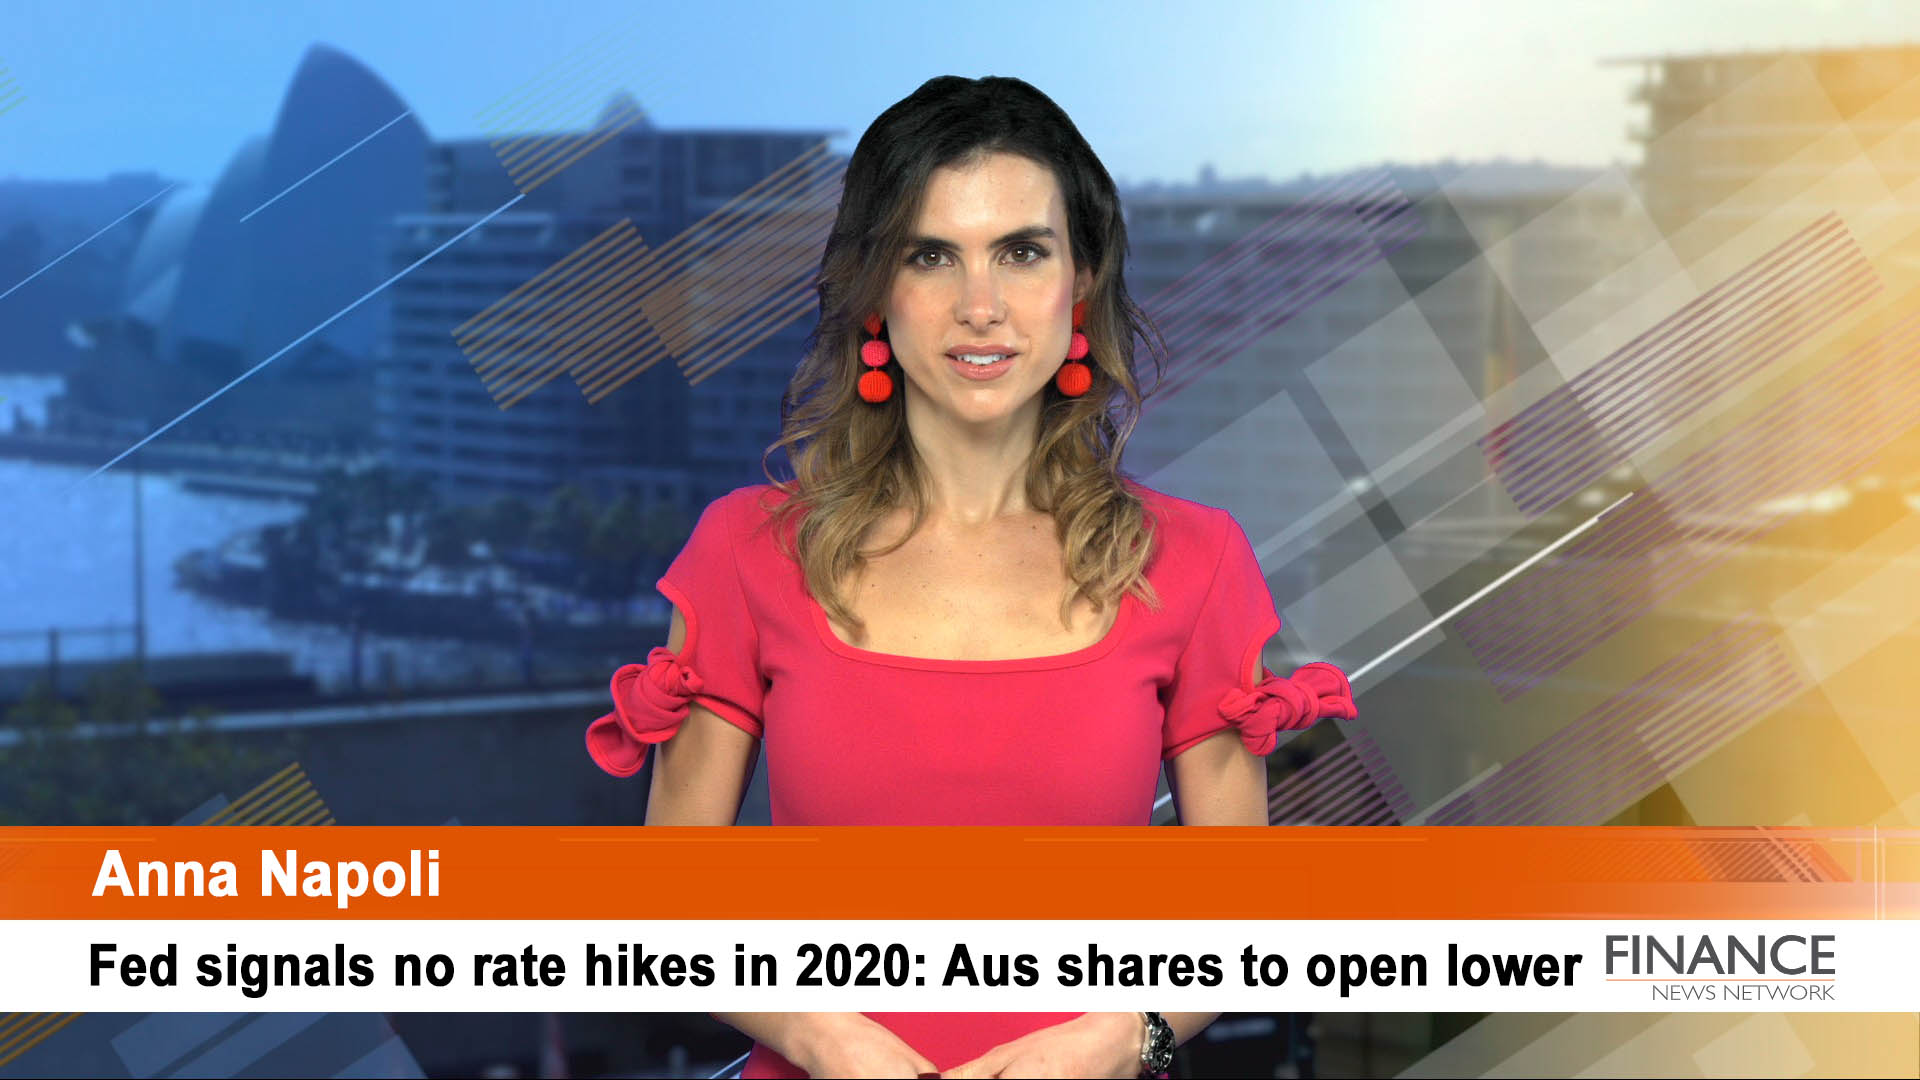 Fed signals no rate hikes in 2020: Aus shares to open lower